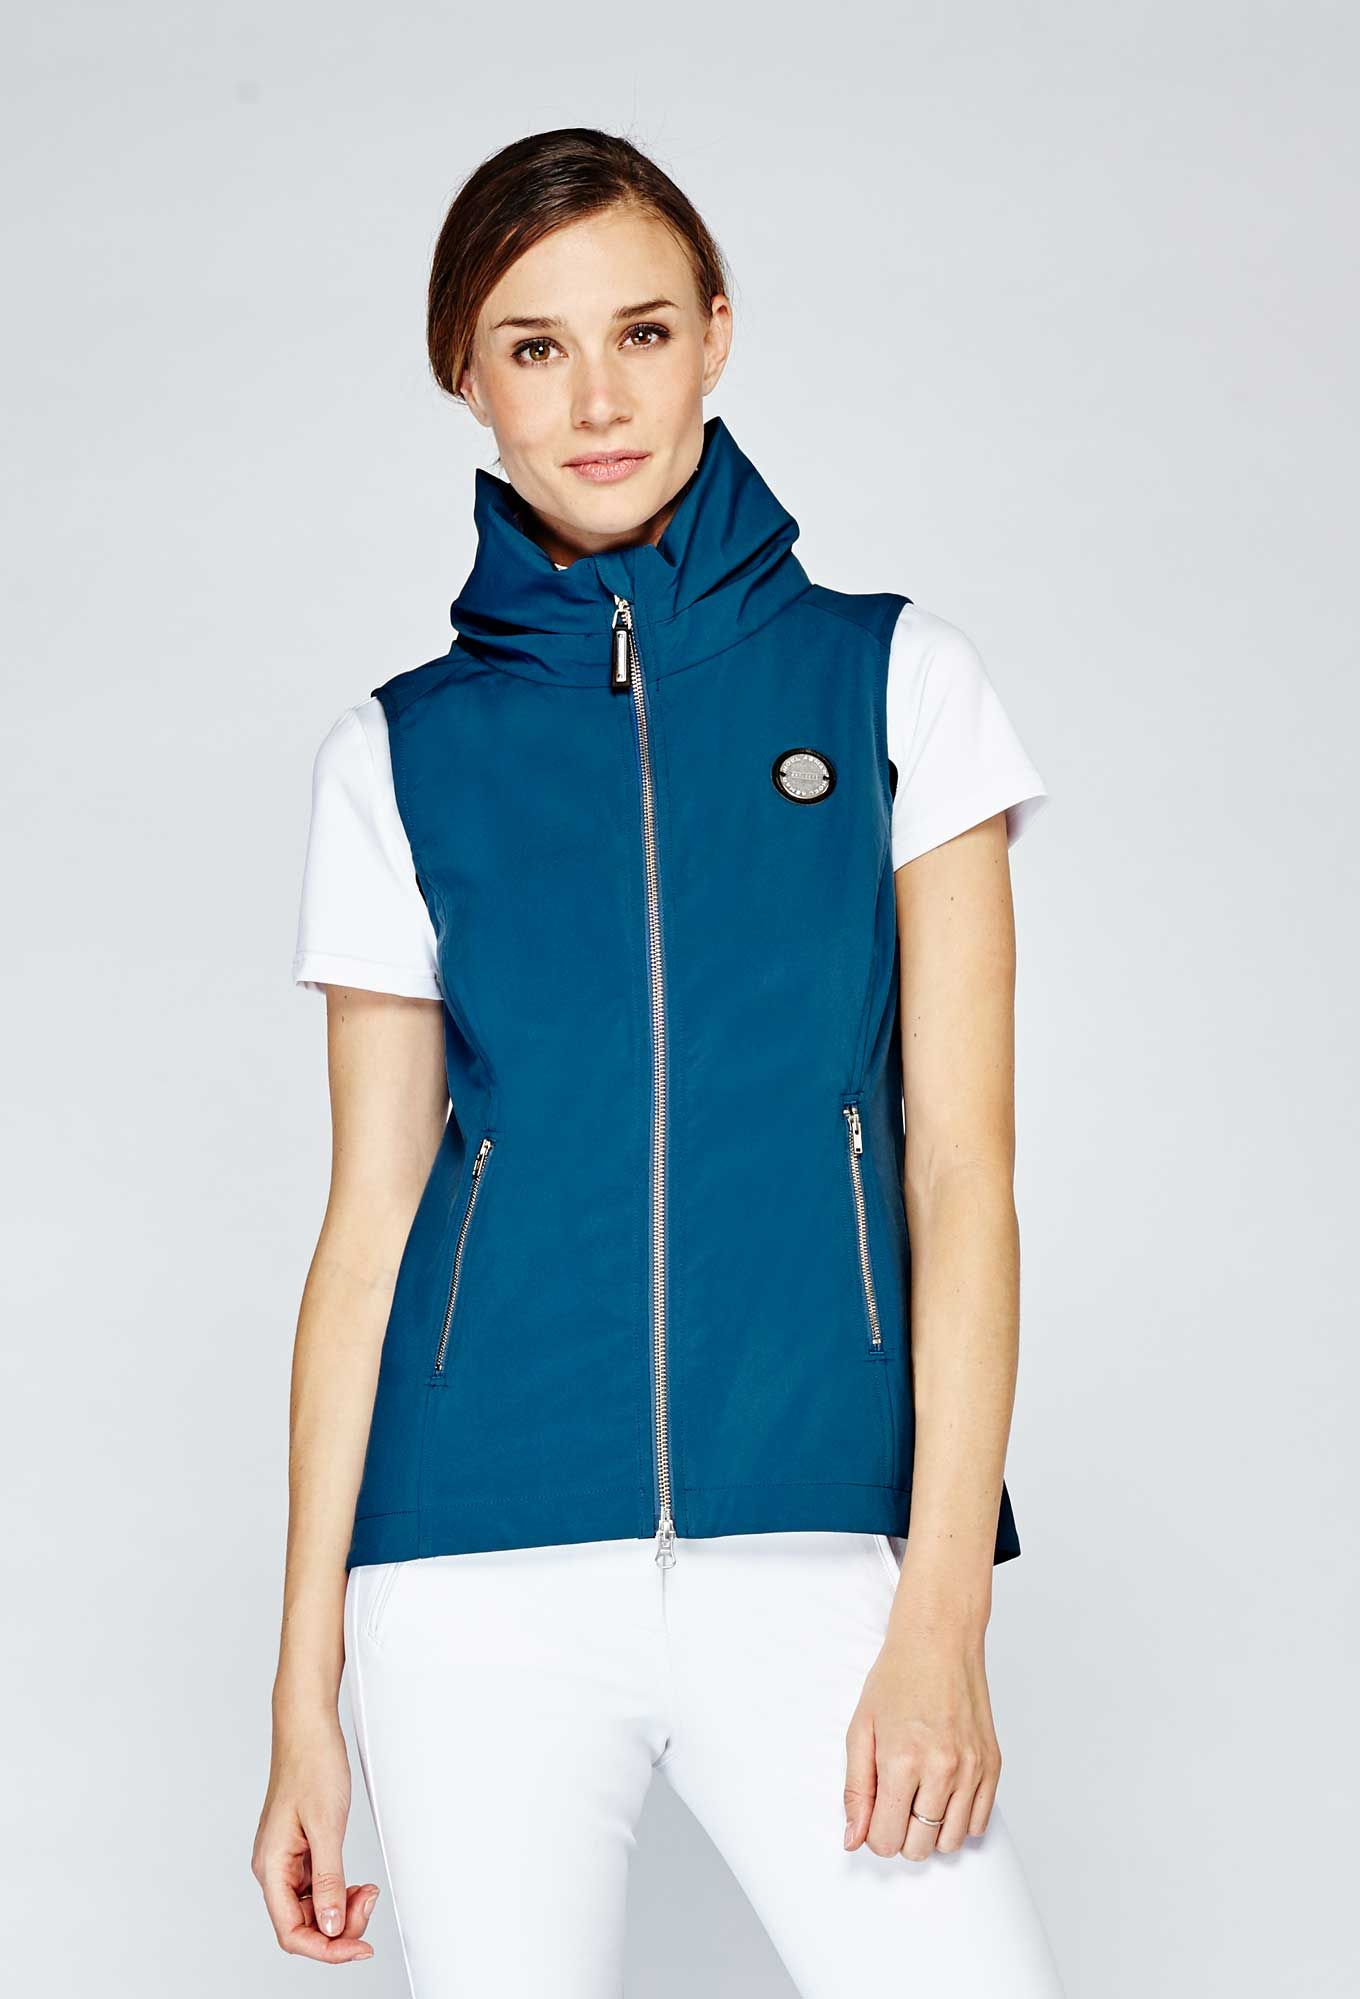 Tofino Vest Equestrian Outfits Outerwear Women Equestrian Style [ 1999 x 1360 Pixel ]